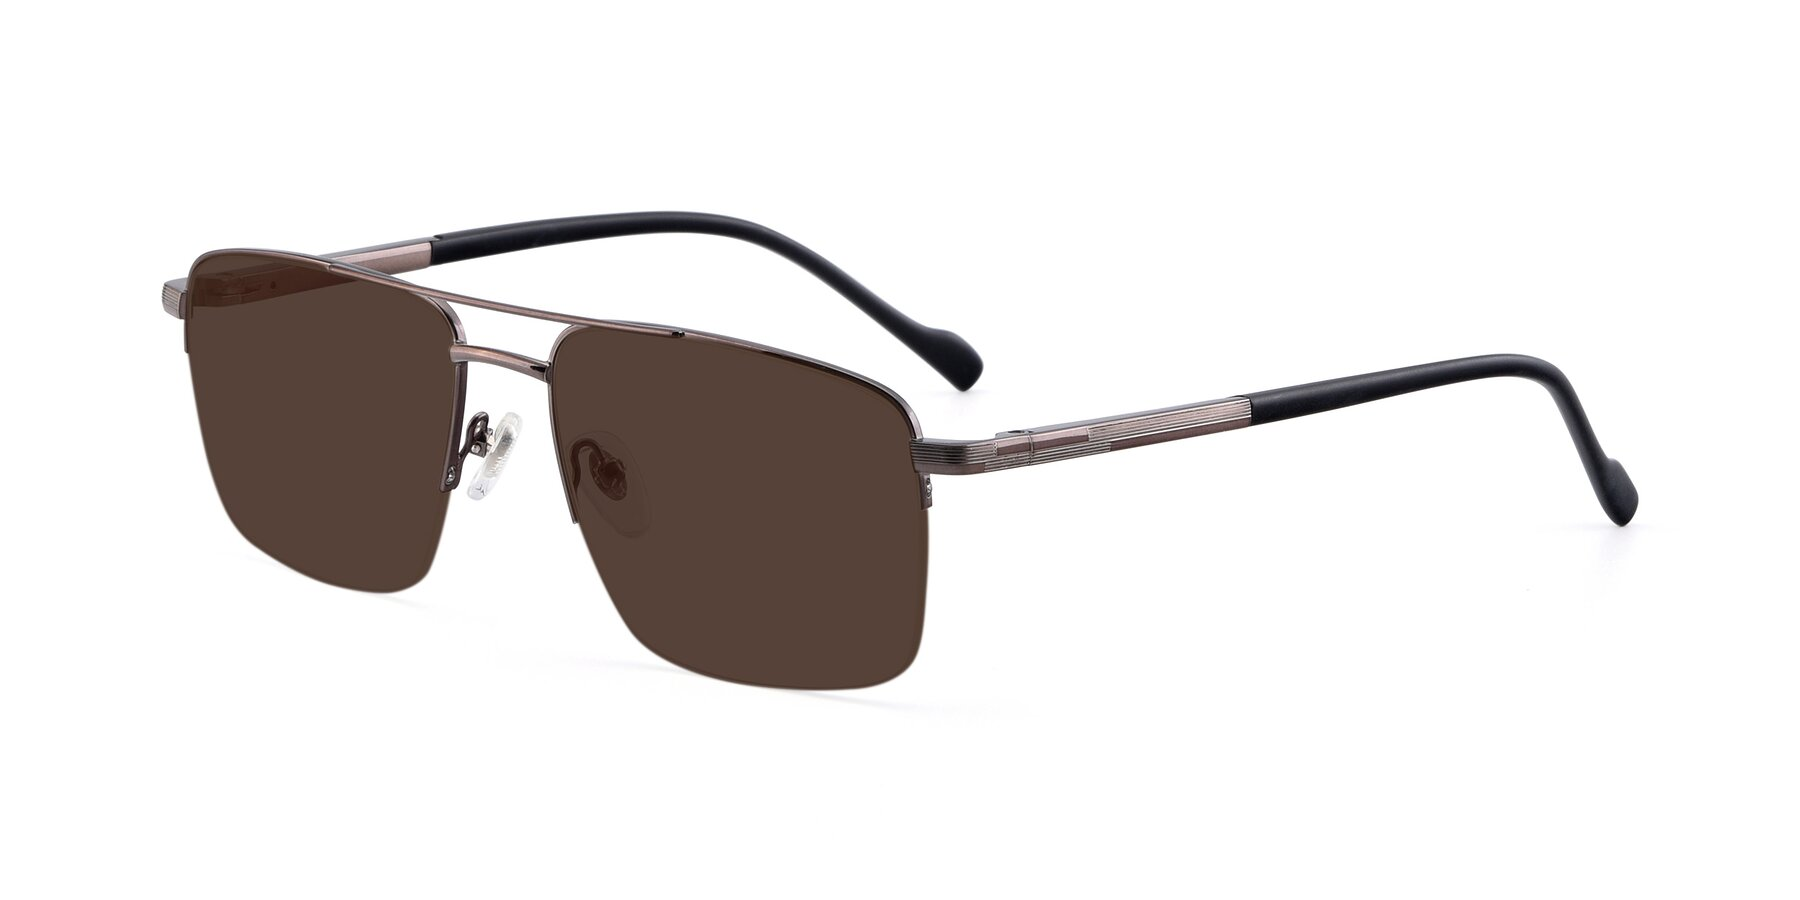 Angle of 19013 in Gunmetal with Brown Tinted Lenses